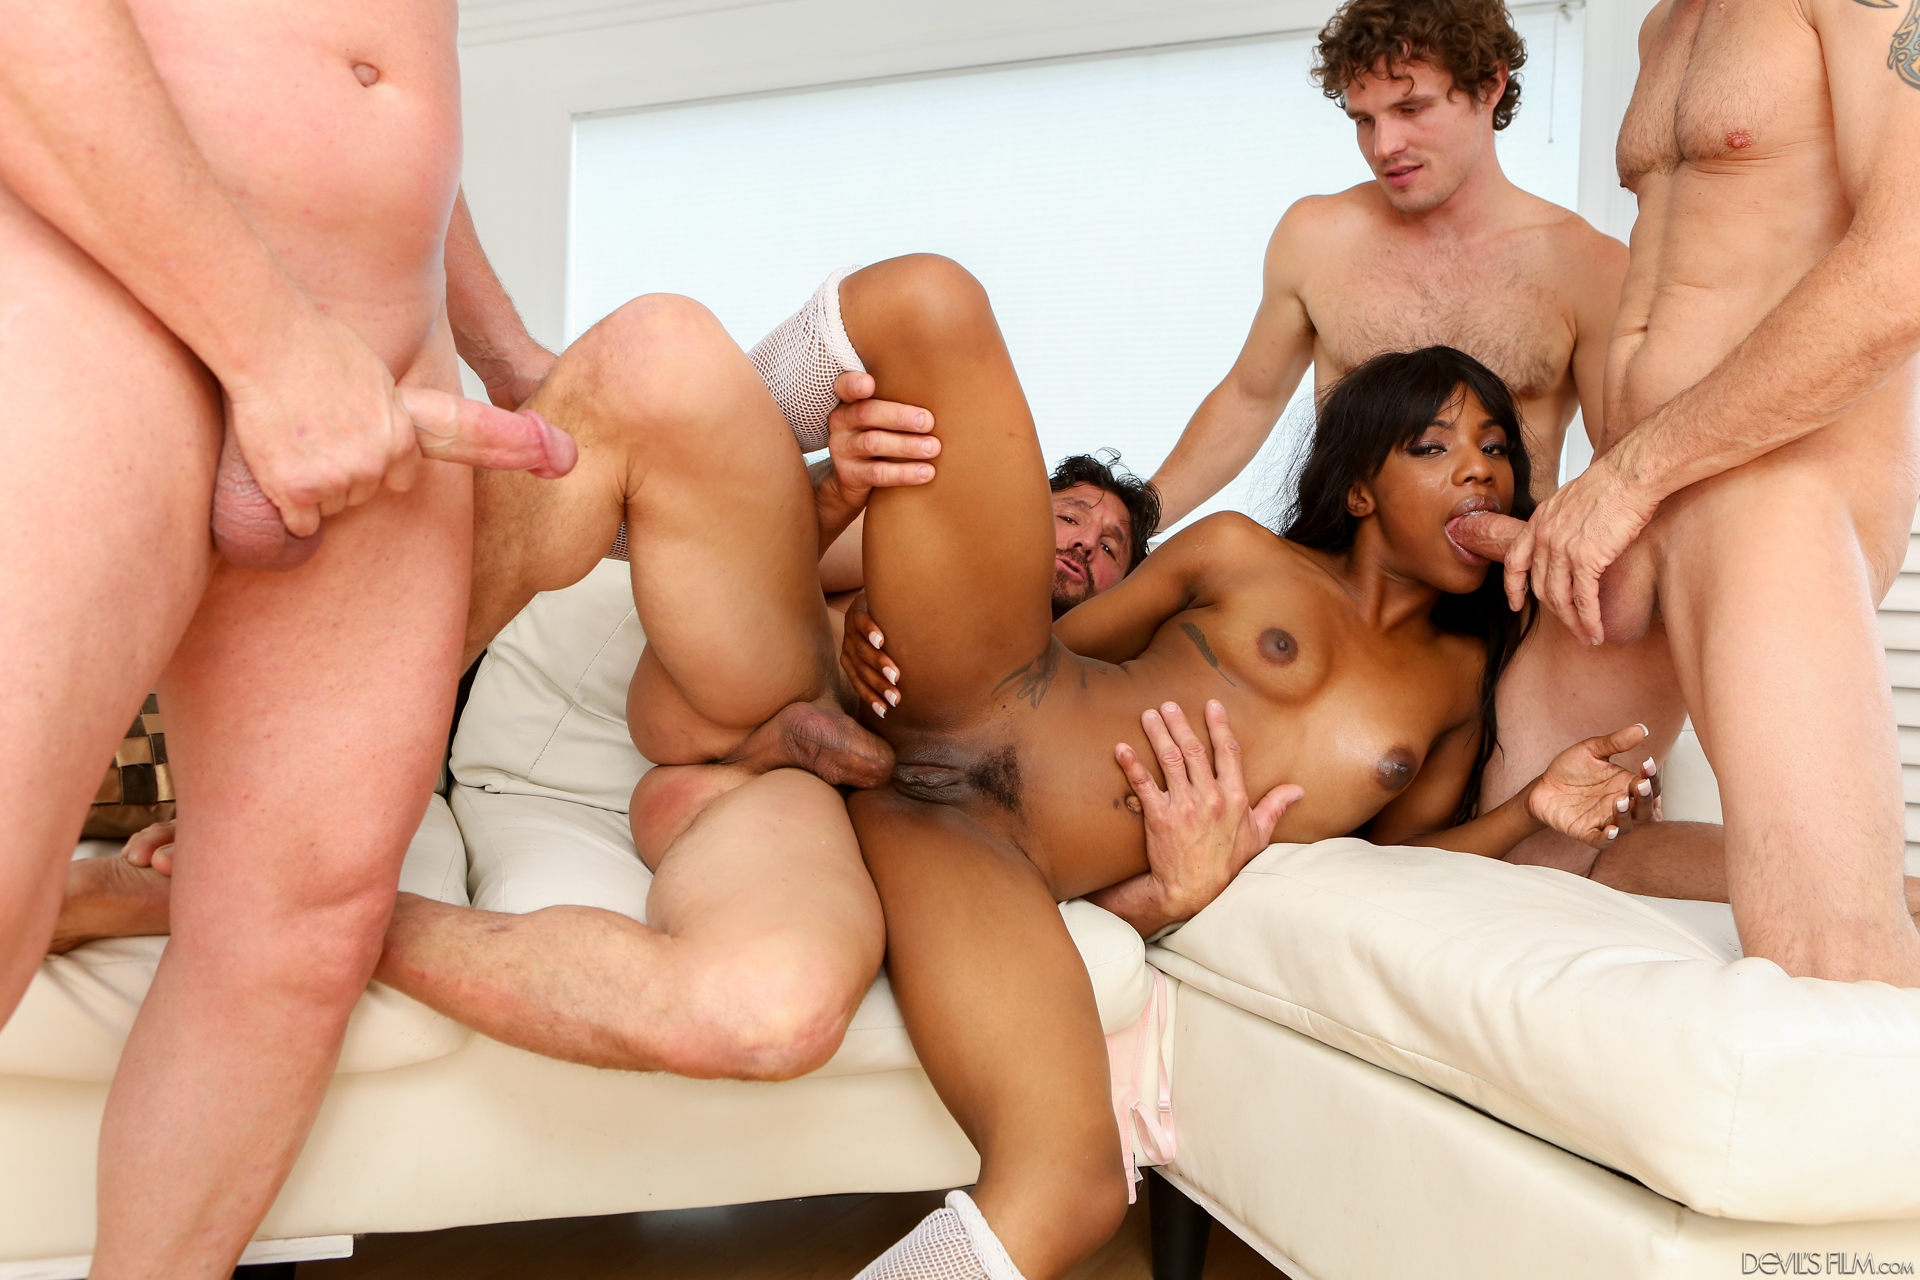 naked white man on ebony woman anal